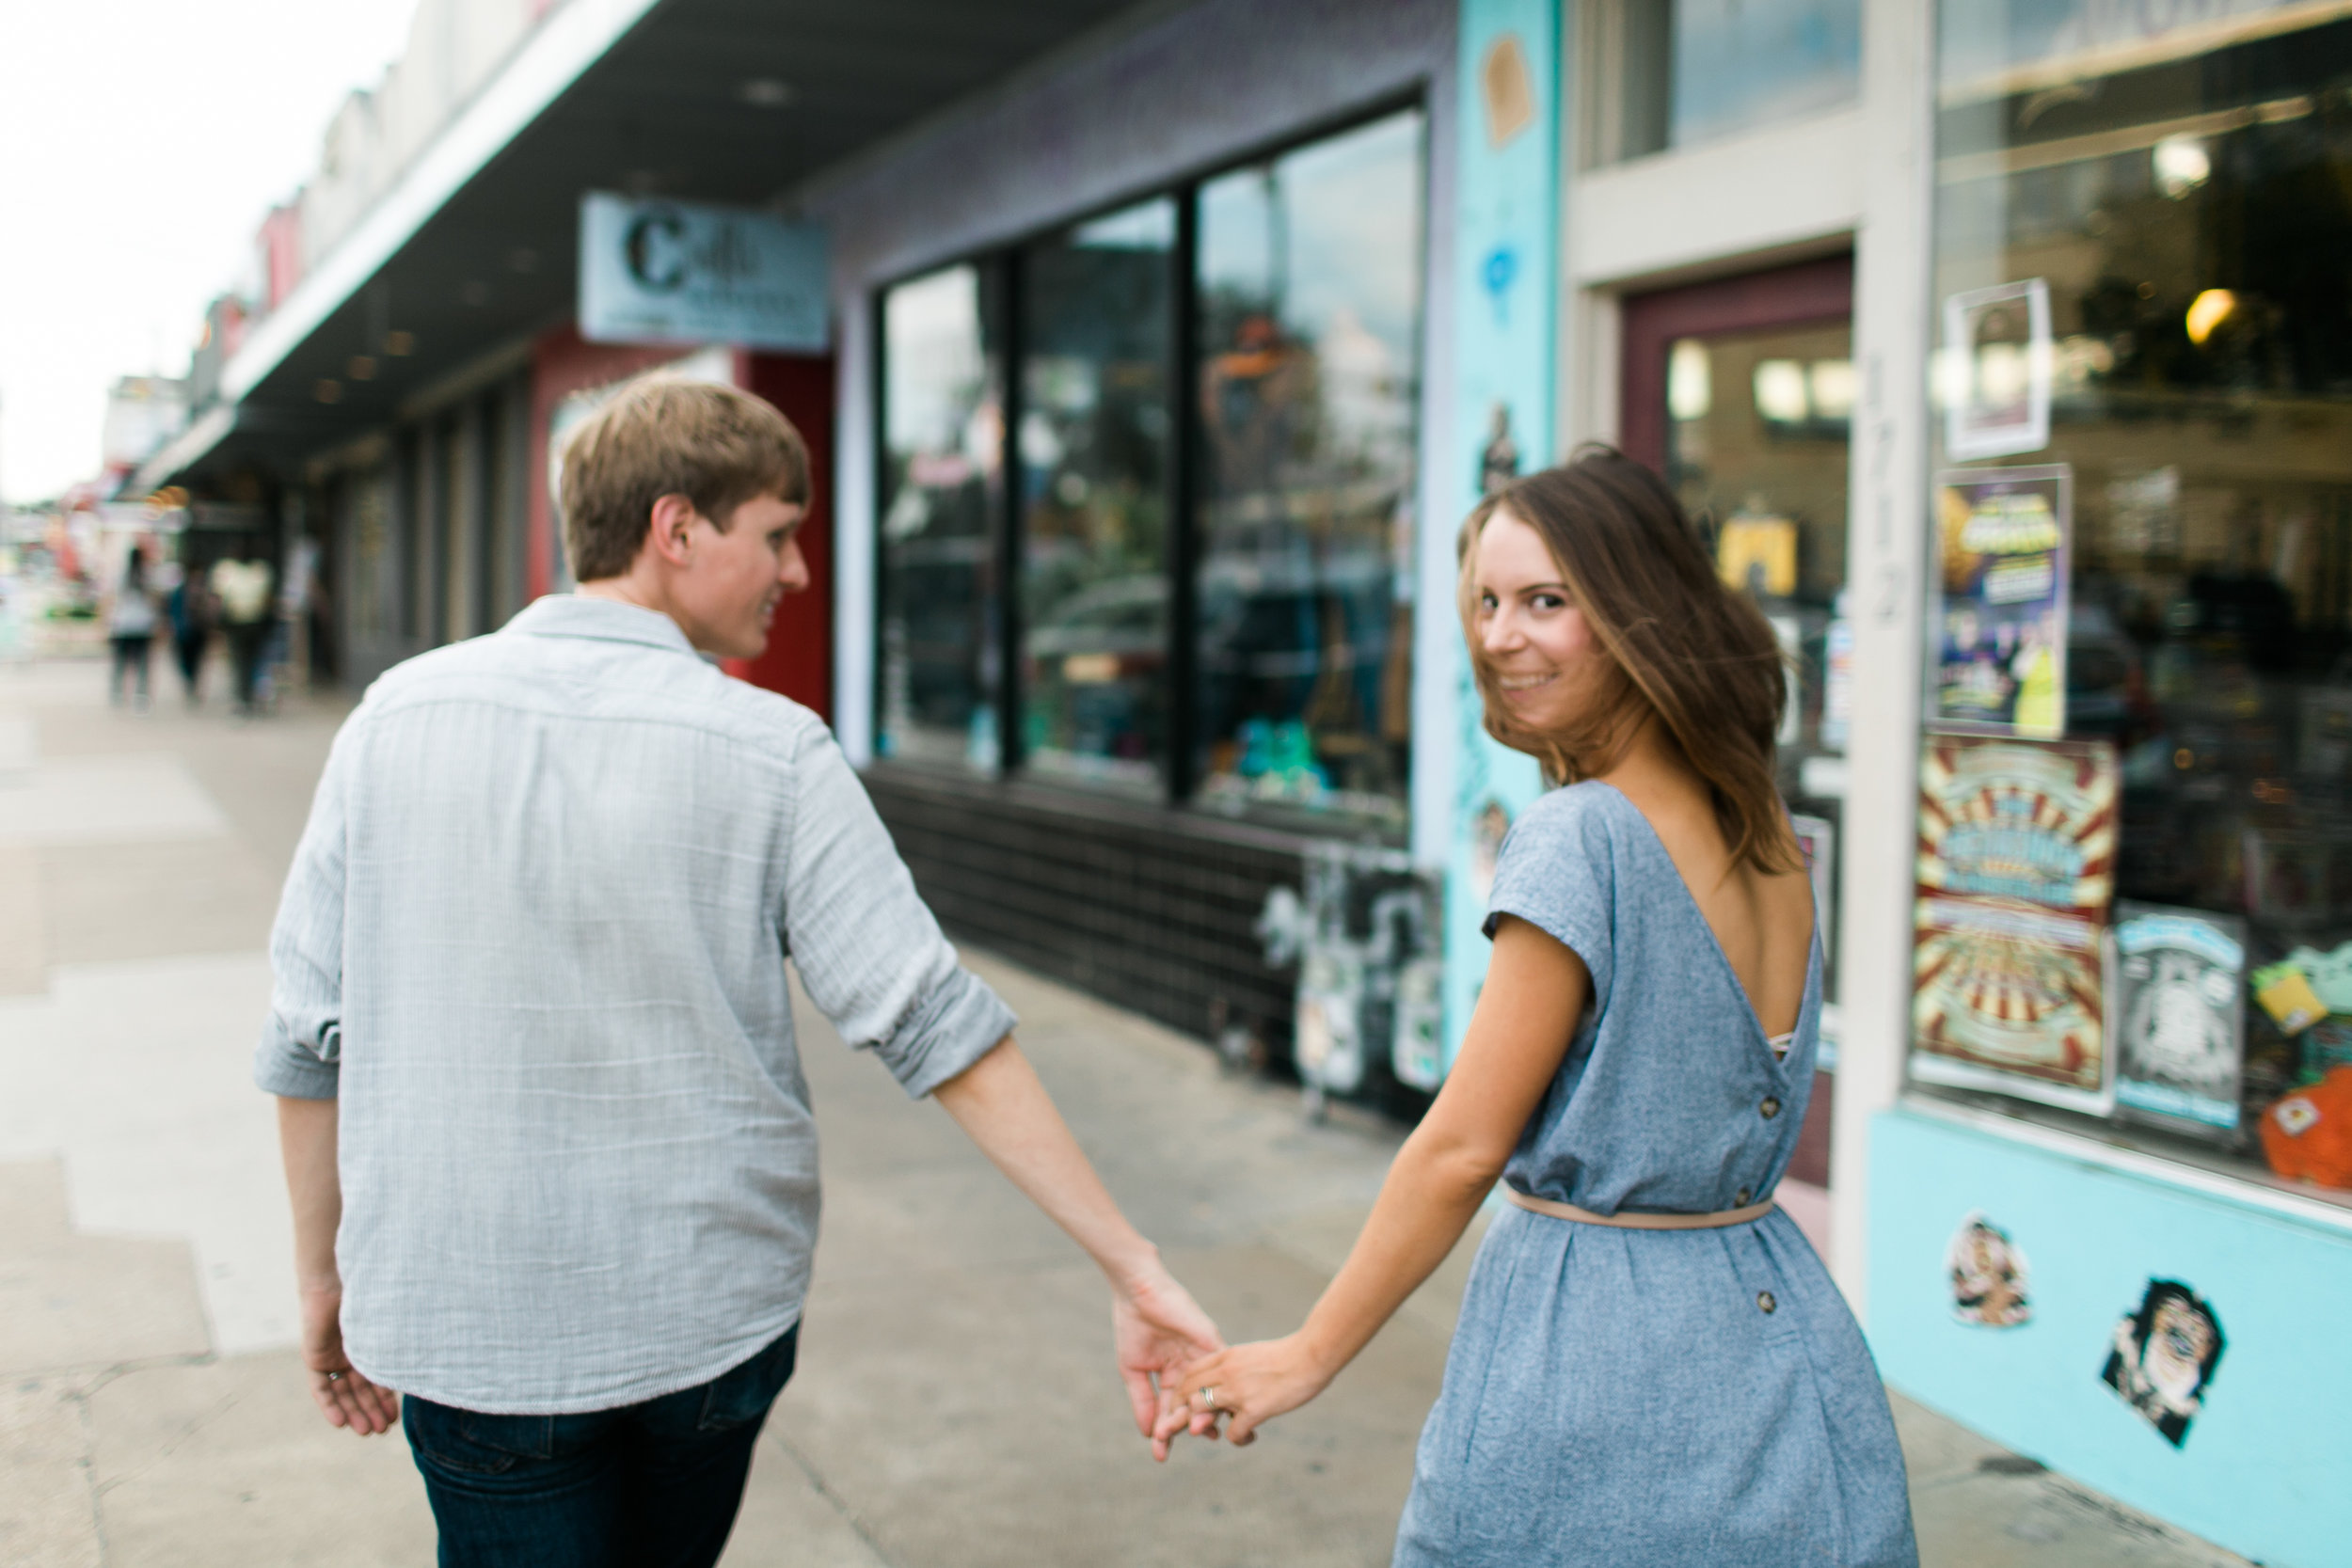 Austin_Texas_Fine_Art_Wedding_Photographer_Kayla_Snell_Photography_South_Congress_Engagement_Session85.jpg